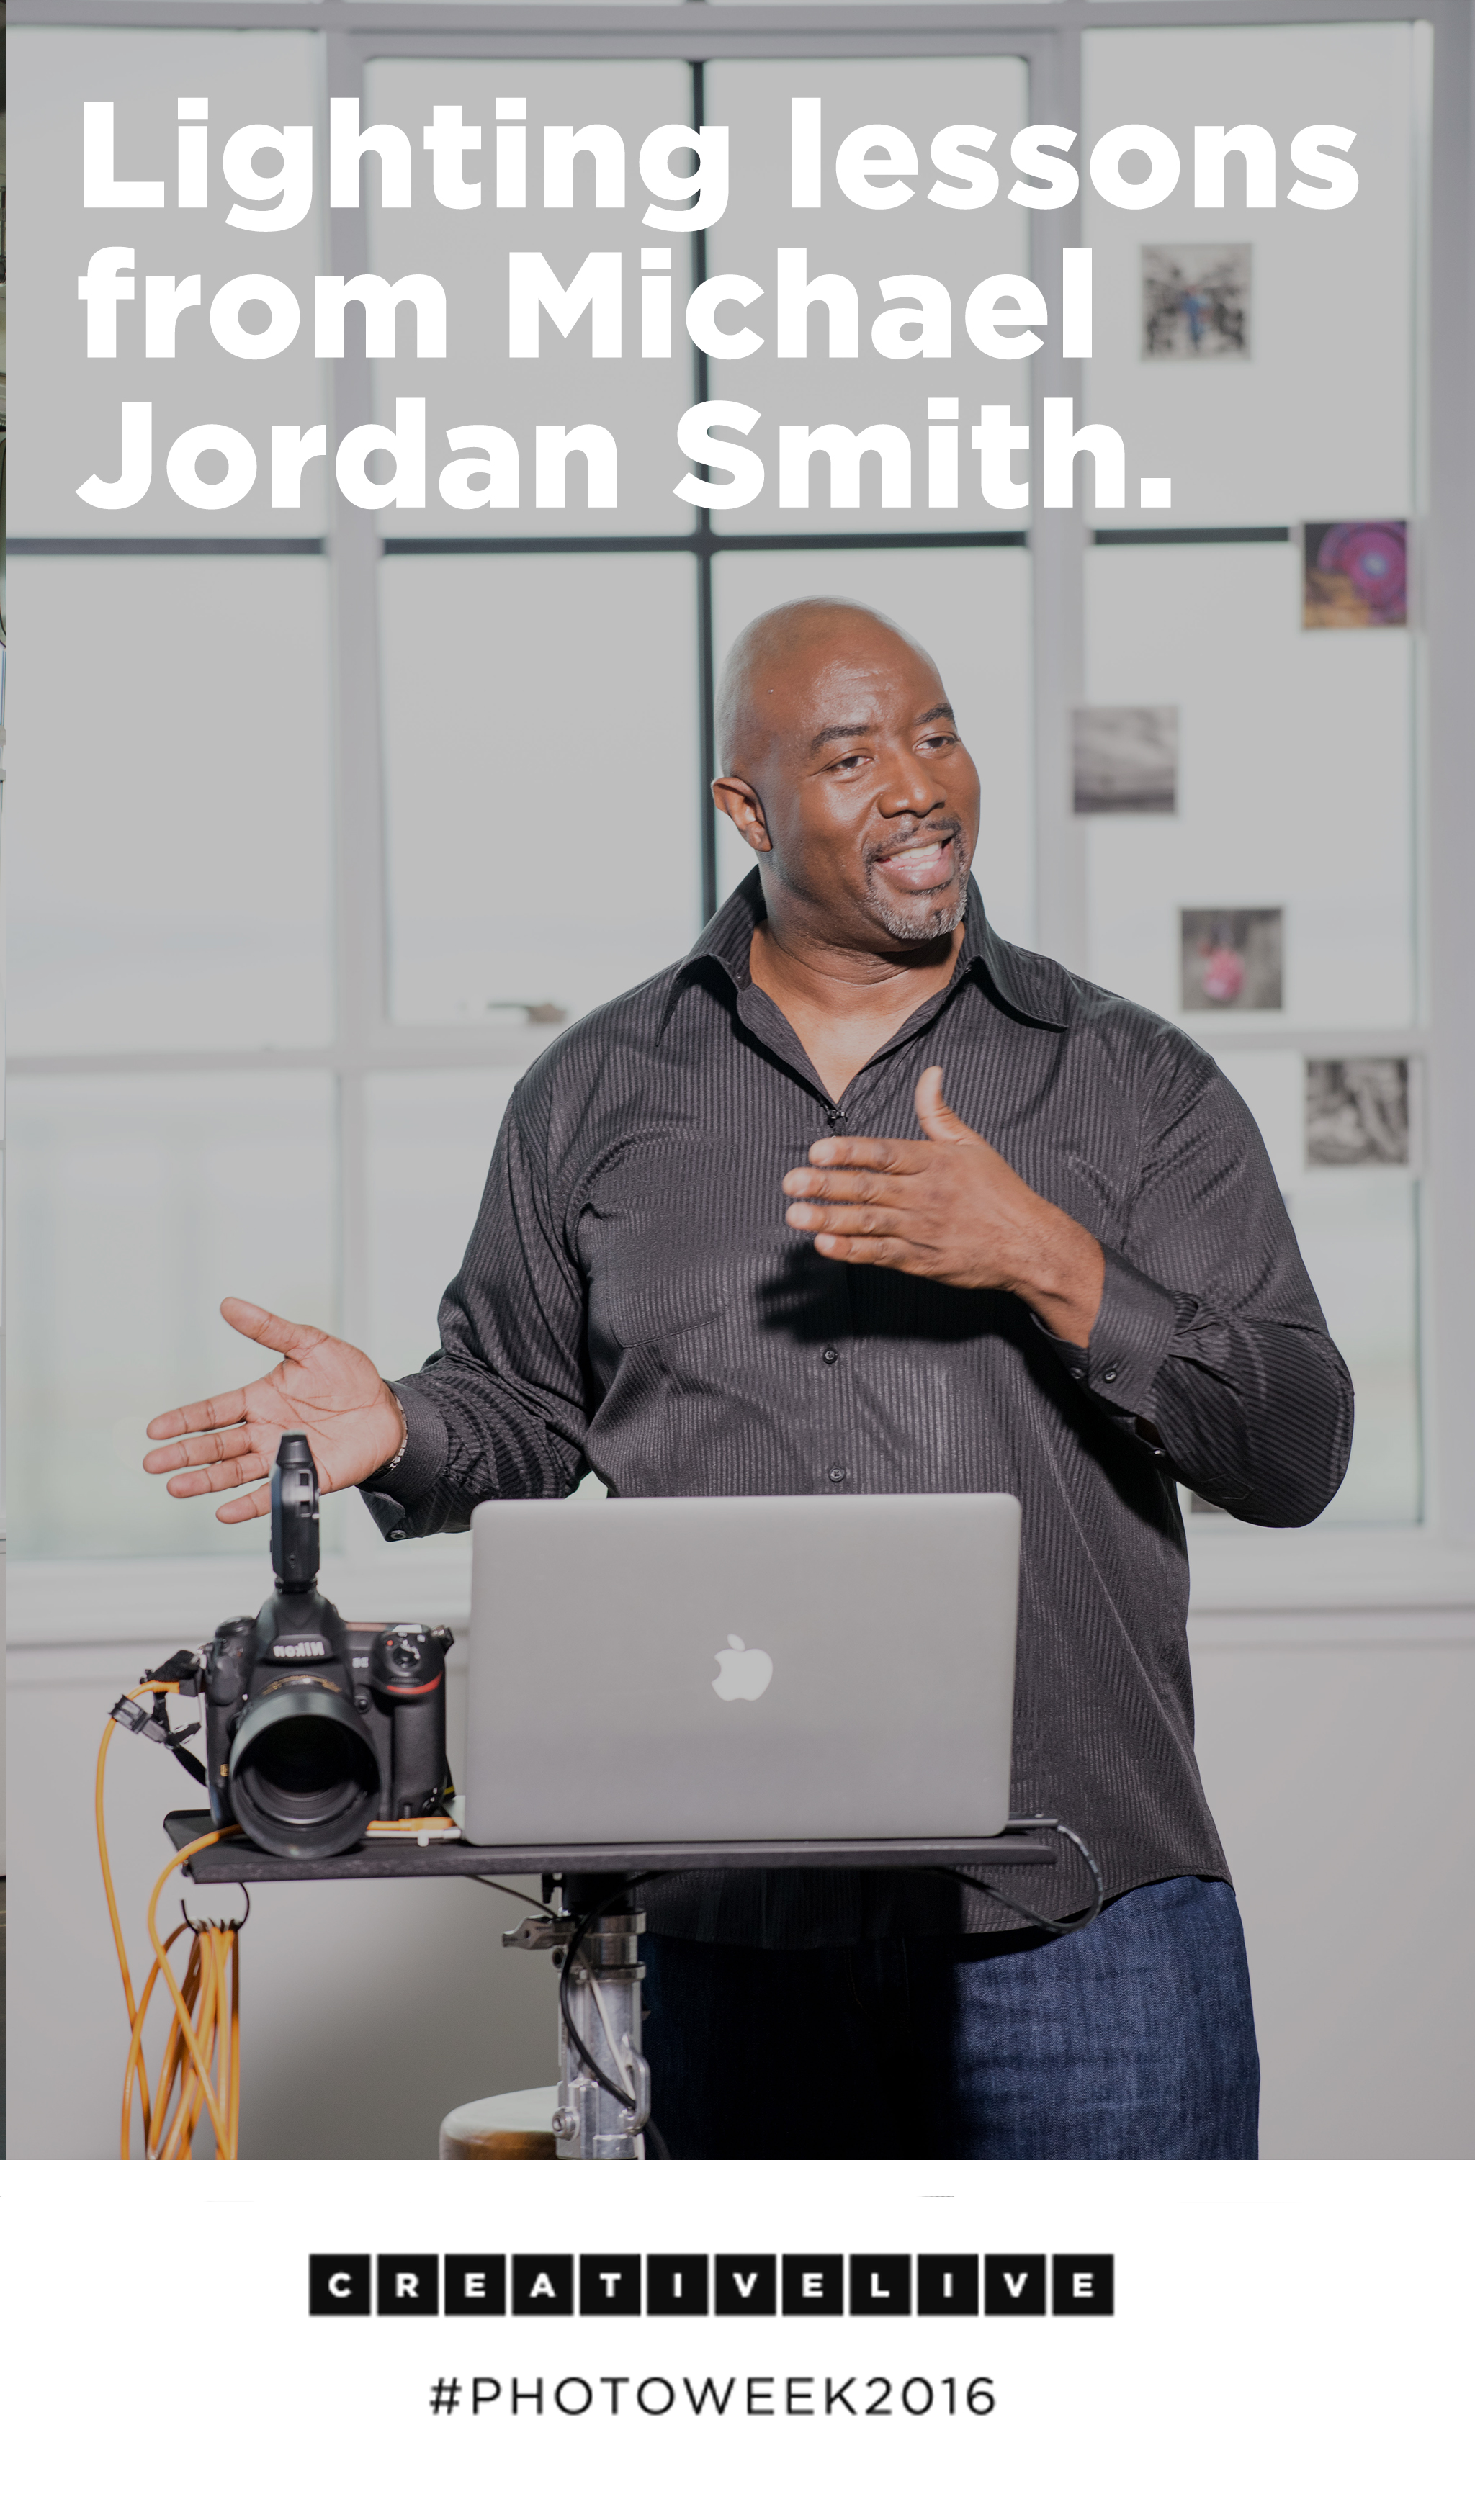 Michael Jordan Smith is an award winning photographer that loves light. He waxed poetic about lighting during Photo Week 2016. Get his best lessons here!